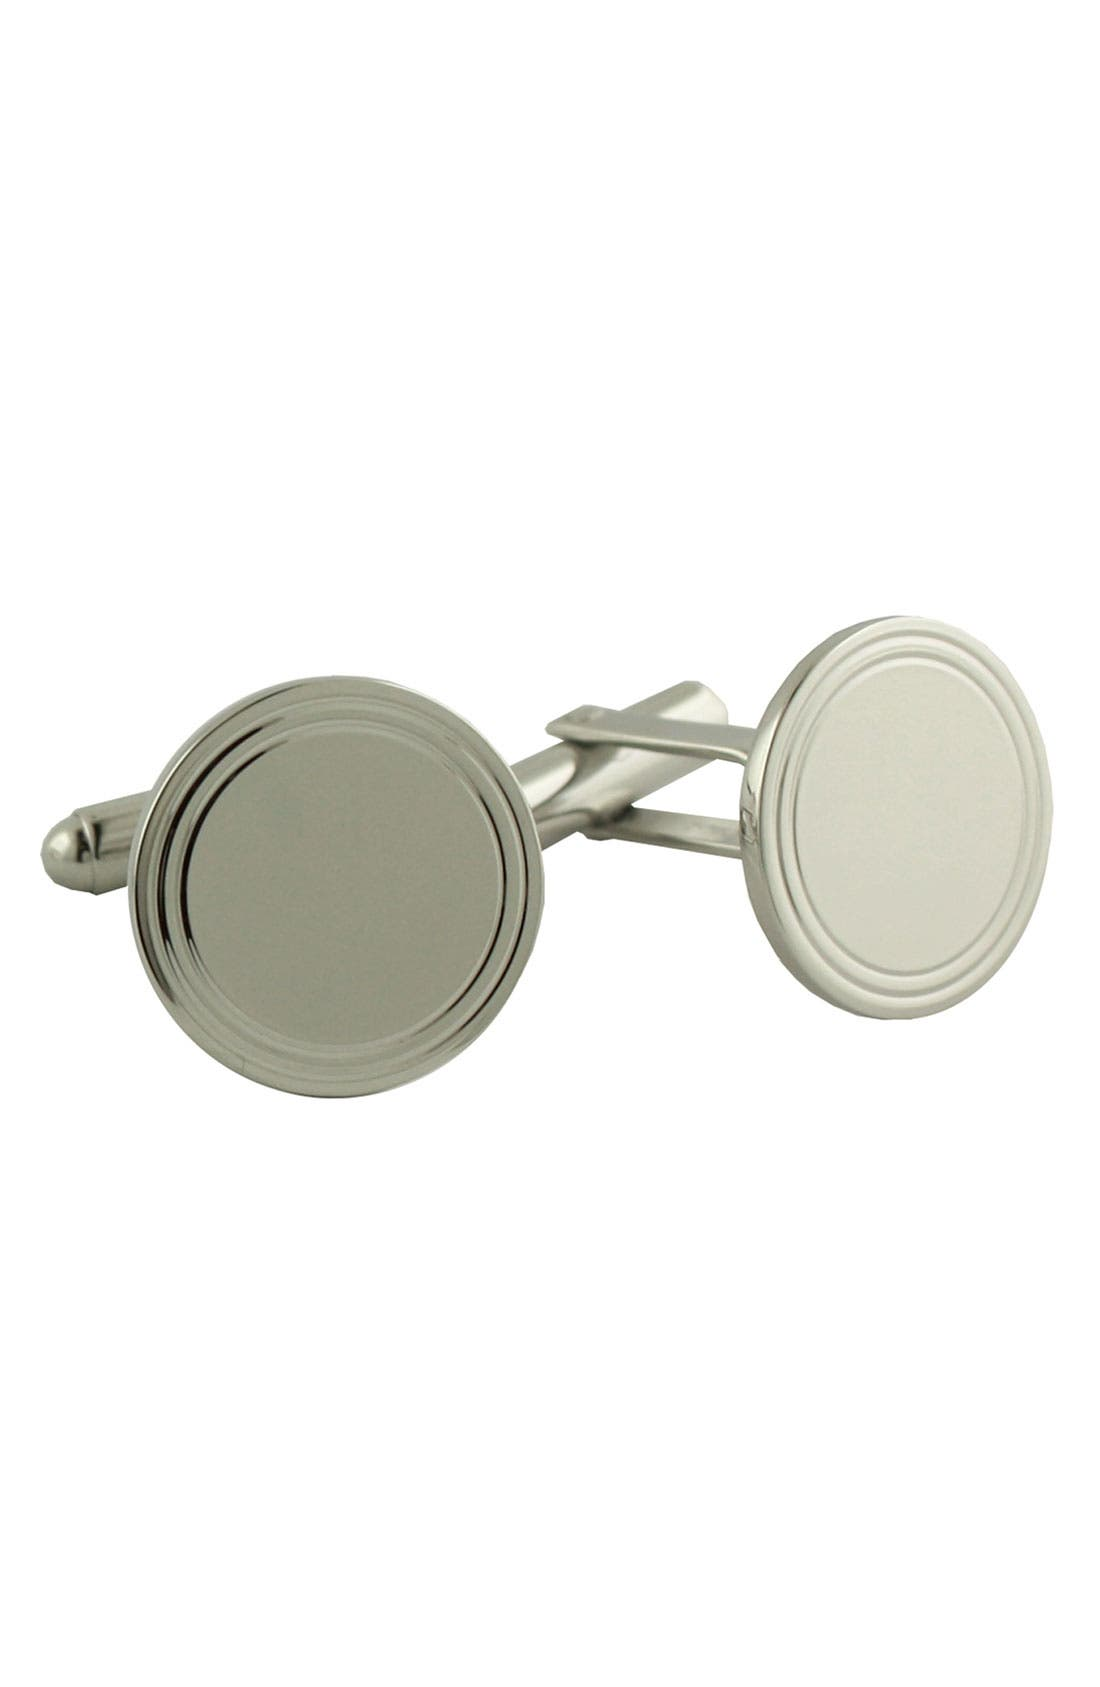 Main Image - David Donahue Engravable Sterling Silver Cuff Links